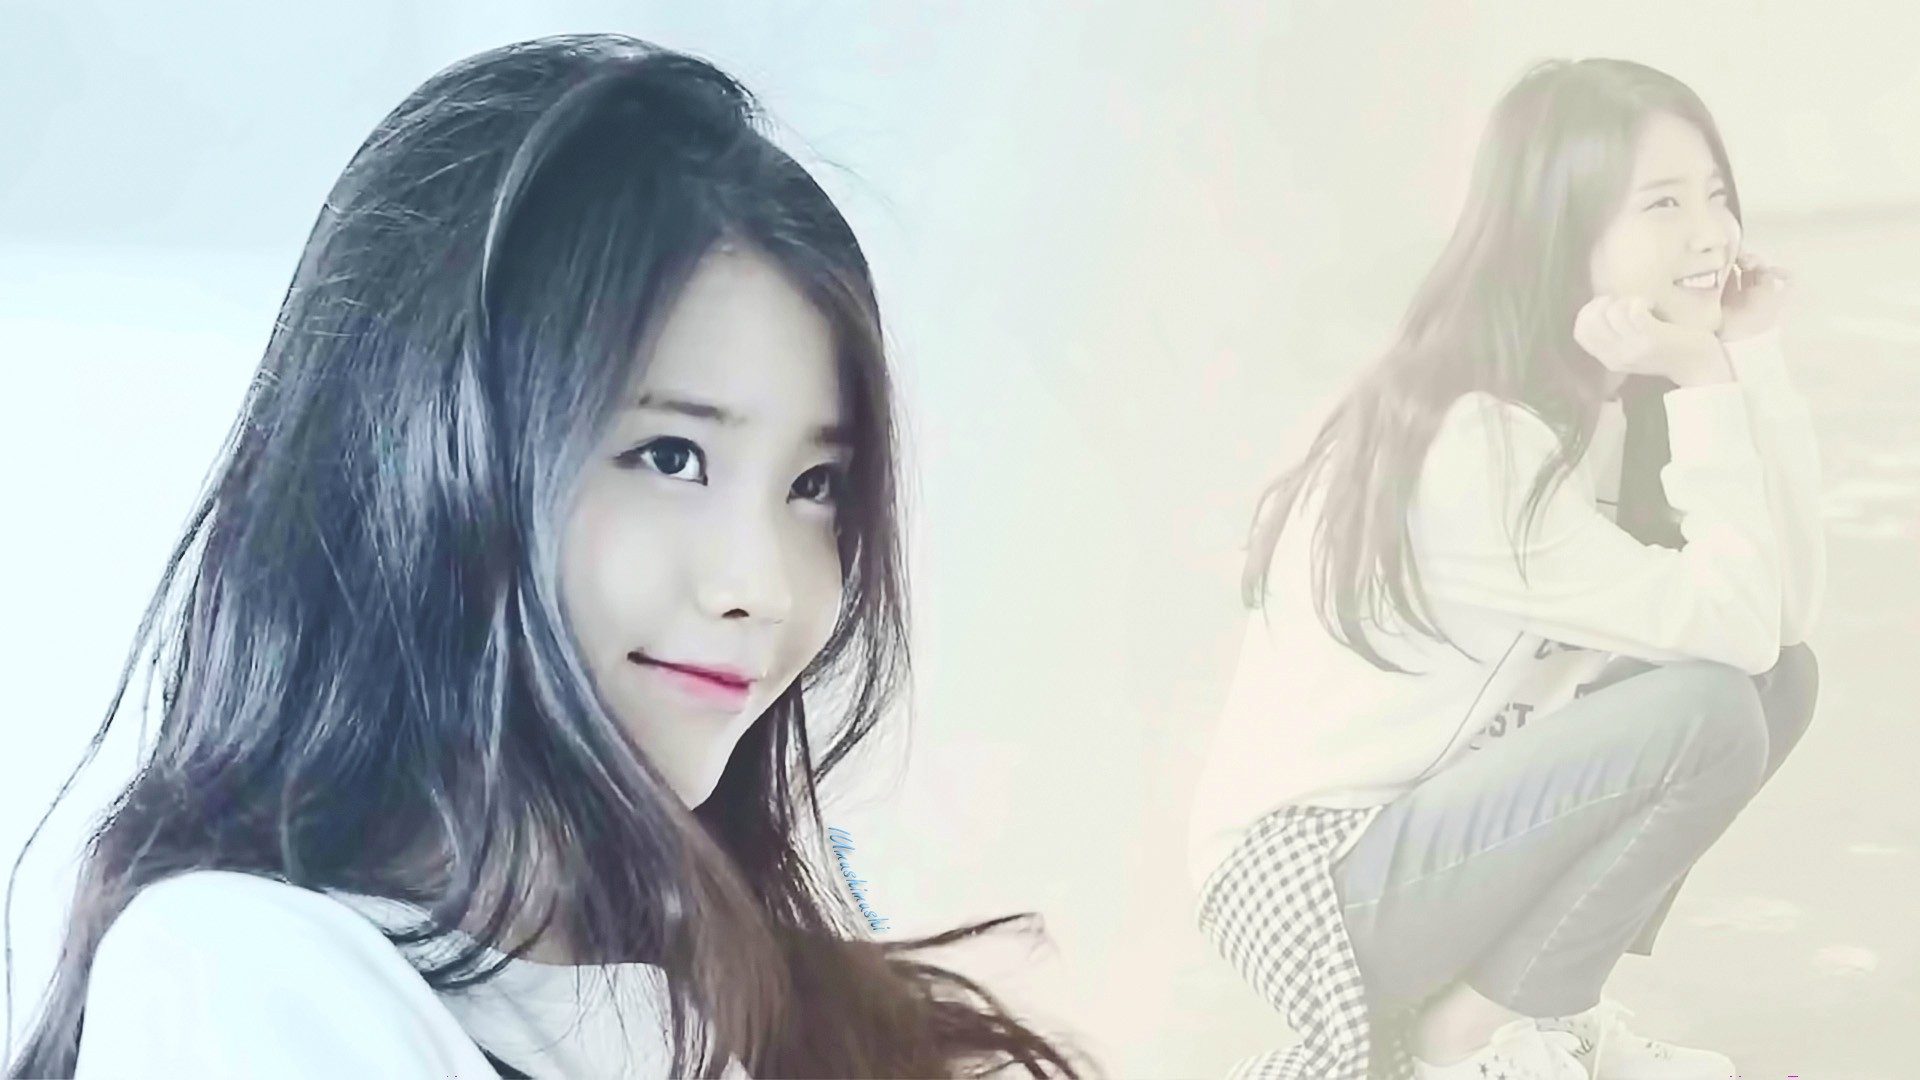 iu wallpaper 1920x1080 iu wallpaper 38838138 fanpop